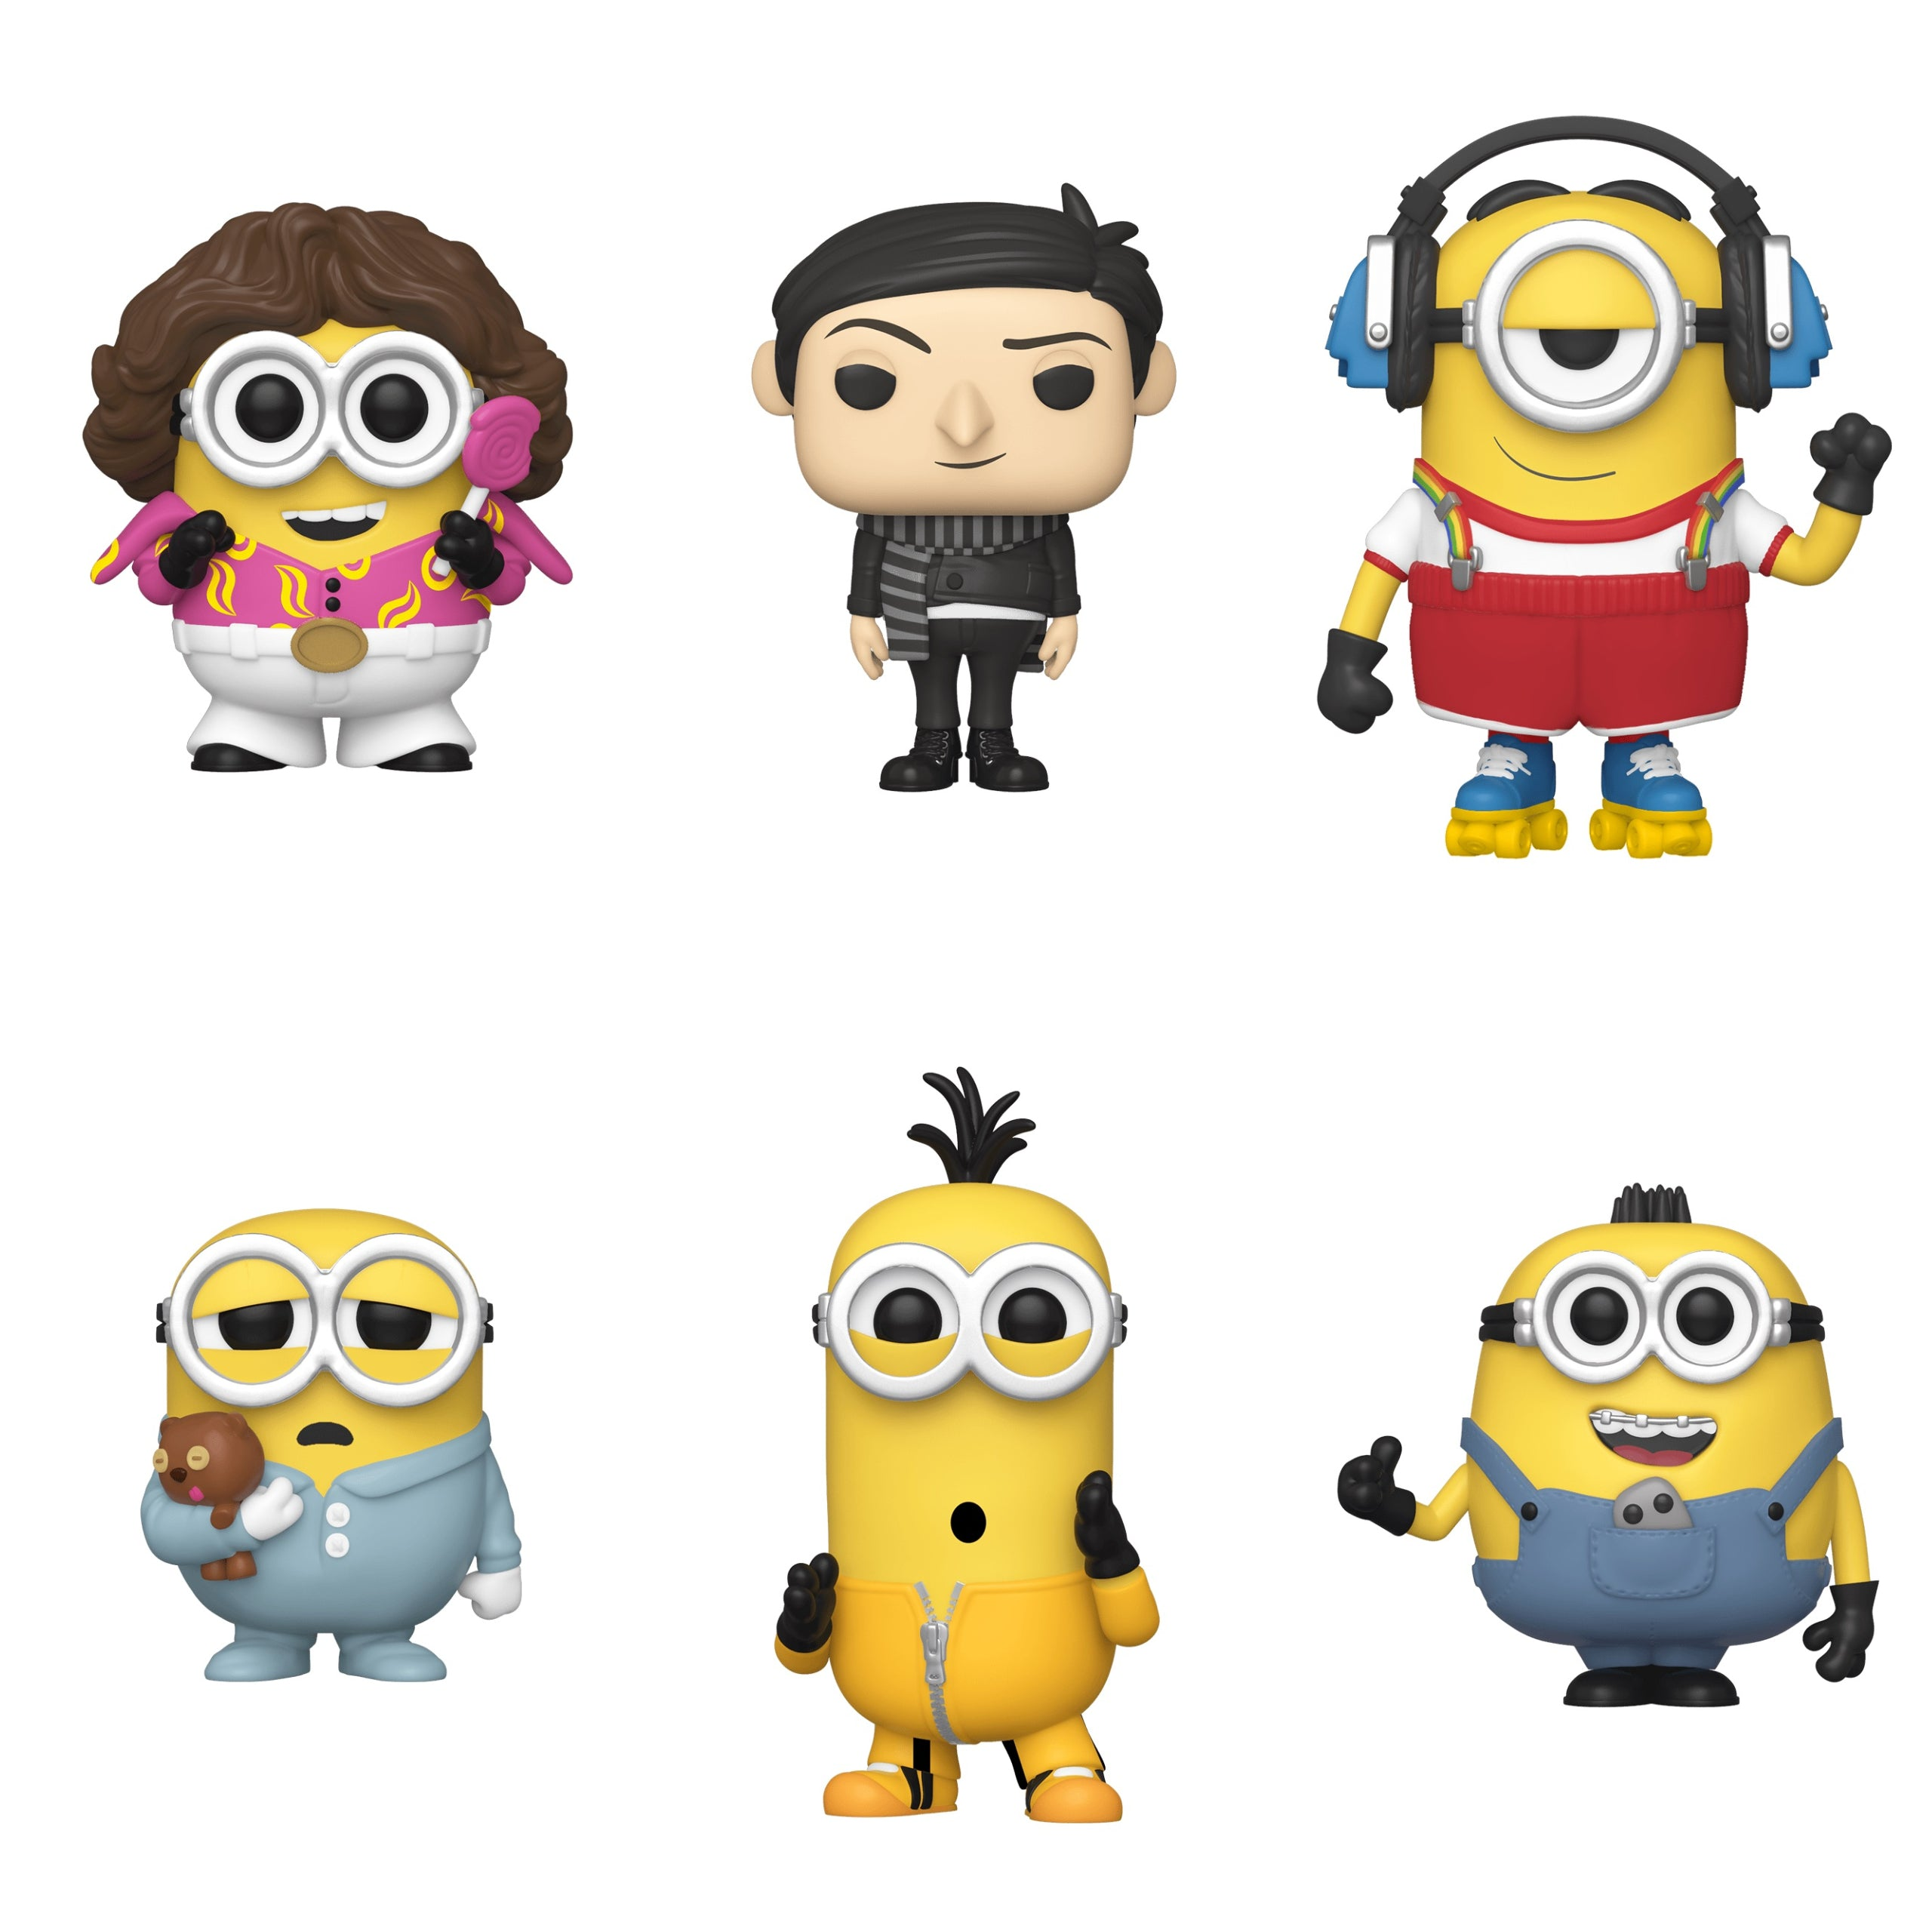 Minions The Rise of Gru Bundle (6 Figures)